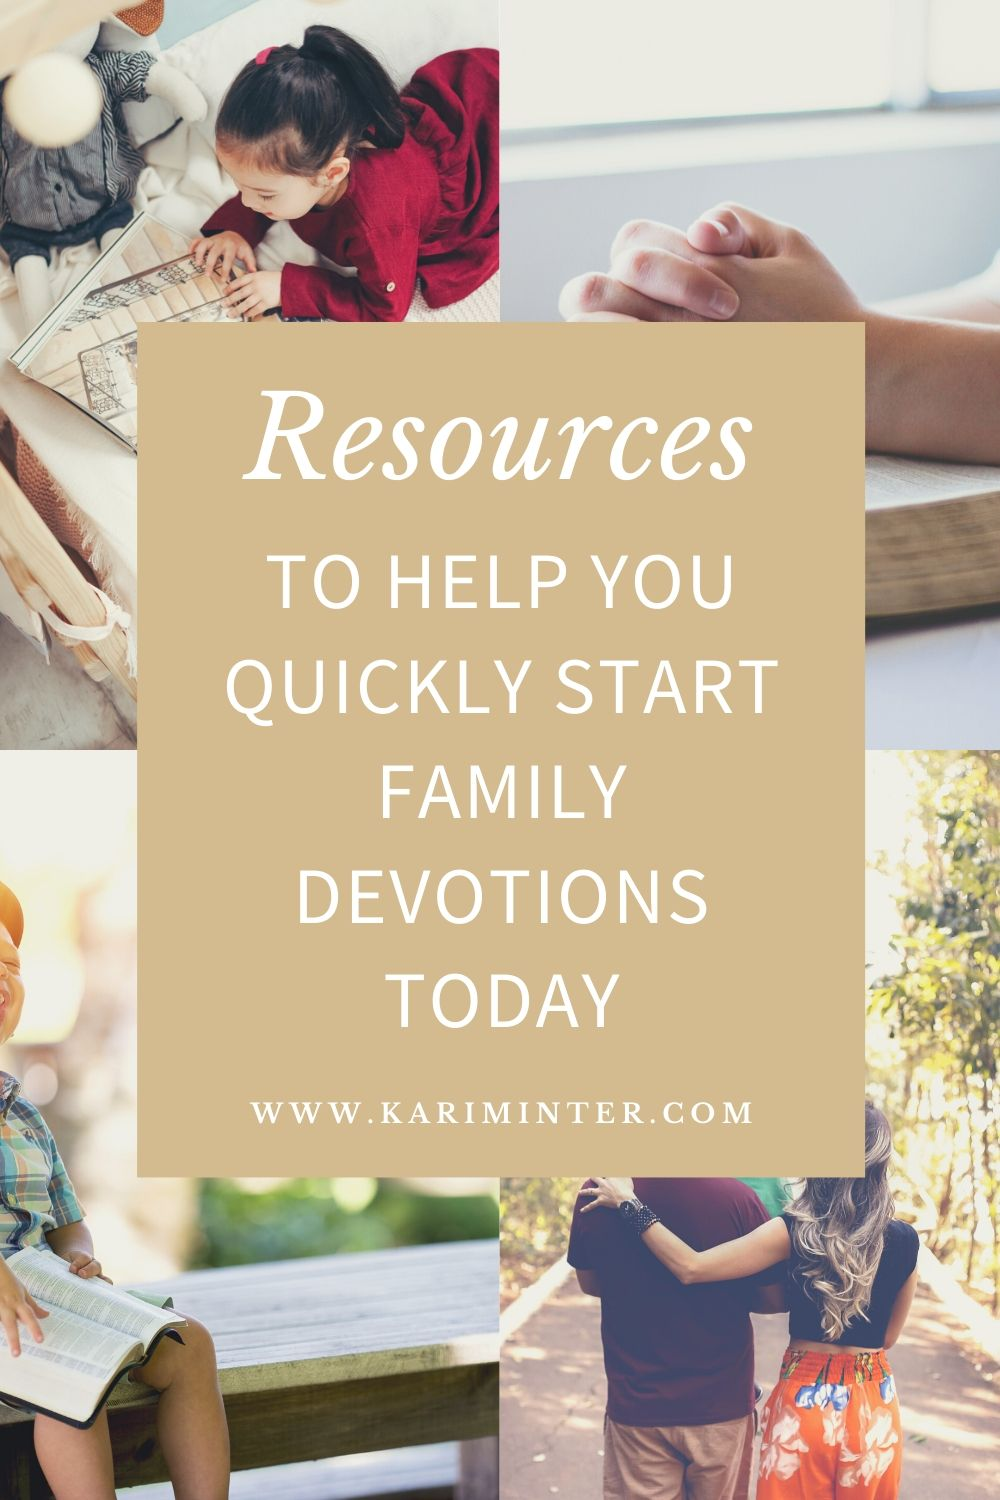 Resources to help you start family devotions